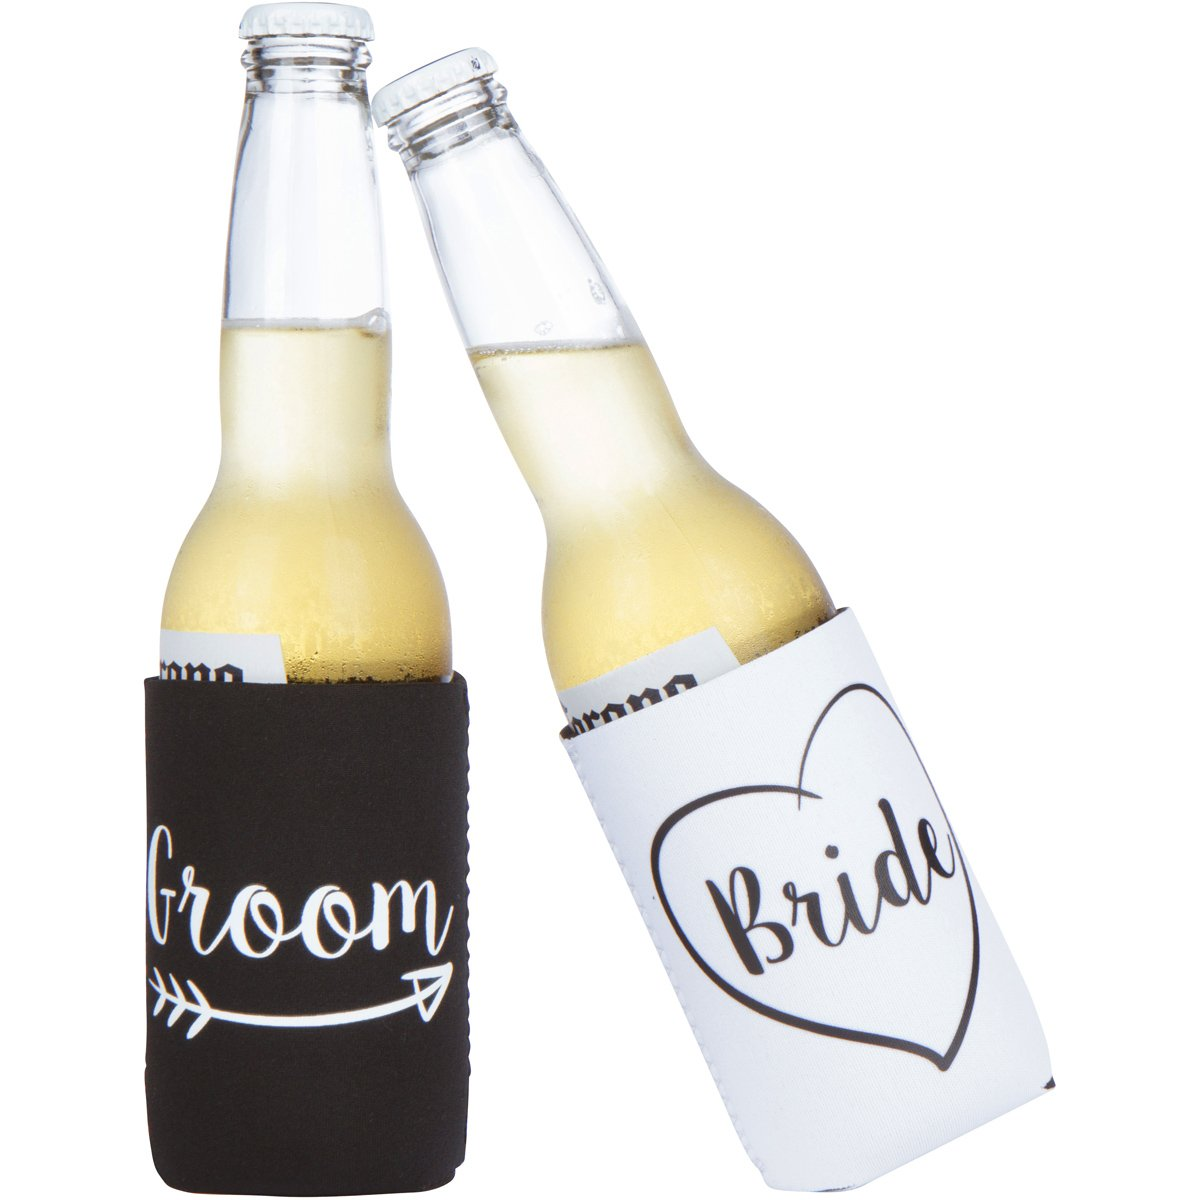 Cute Wedding Gifts - Bride and Groom Novelty Can Cooler Combo - Engagement Gift for Couples by The Plympton Company (Image #4)